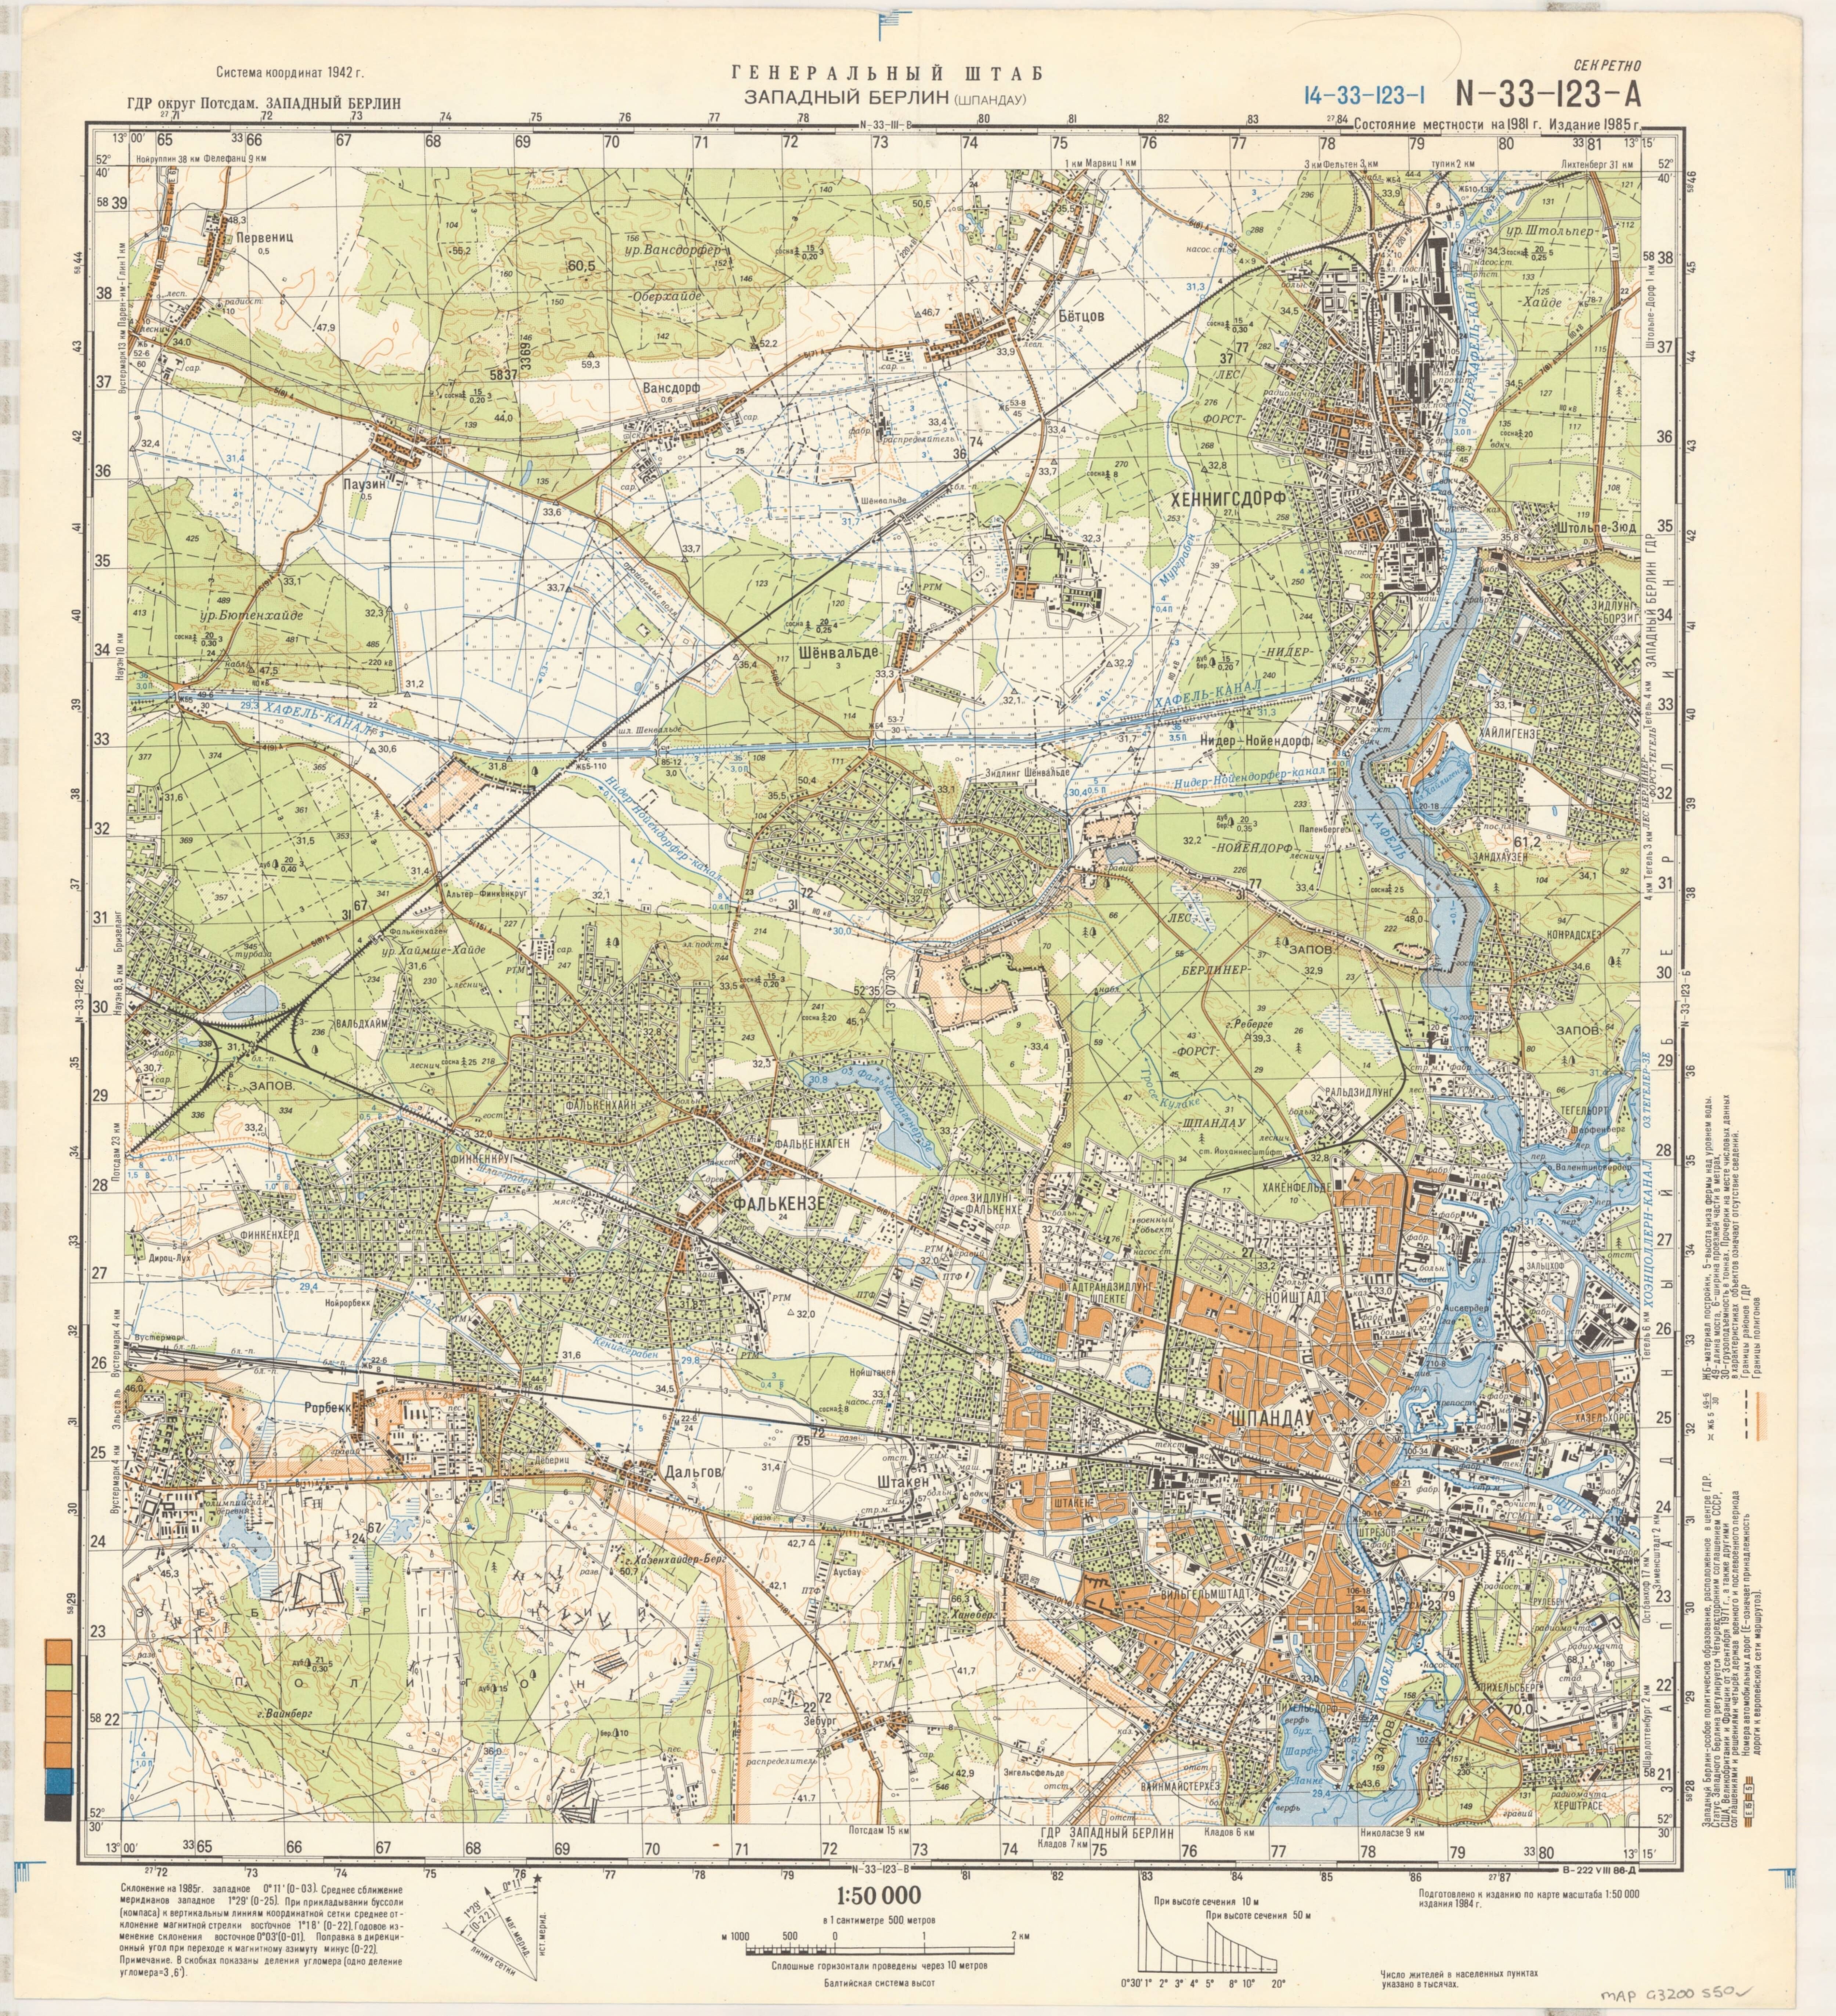 Soviet Military Topographic Map Of West Berlin Spandau Map - Military topographic maps